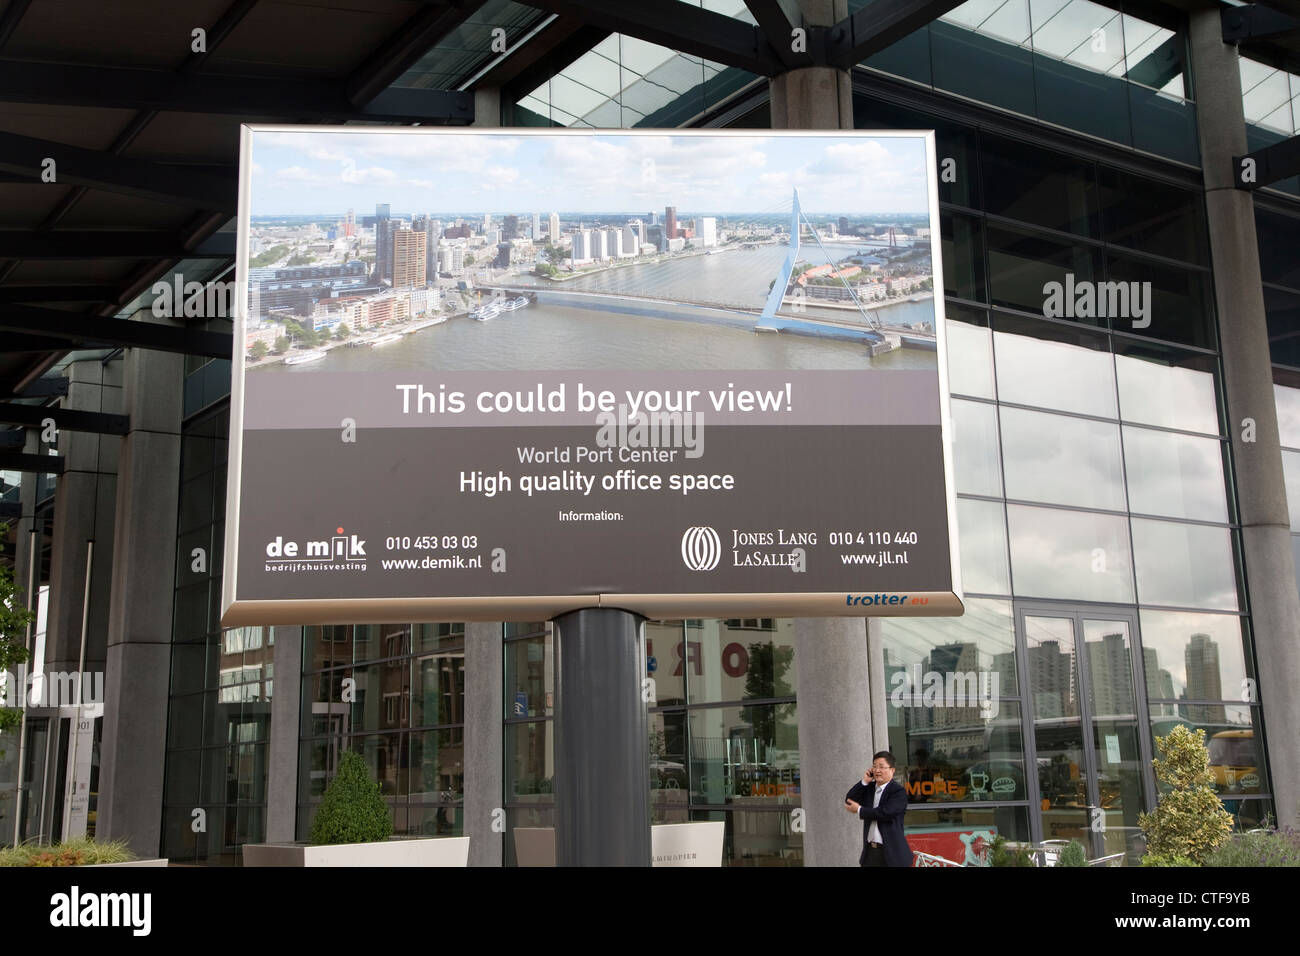 commercial property office space advertising billboard poster world port center rotterdam netherlands stock image advertising office space